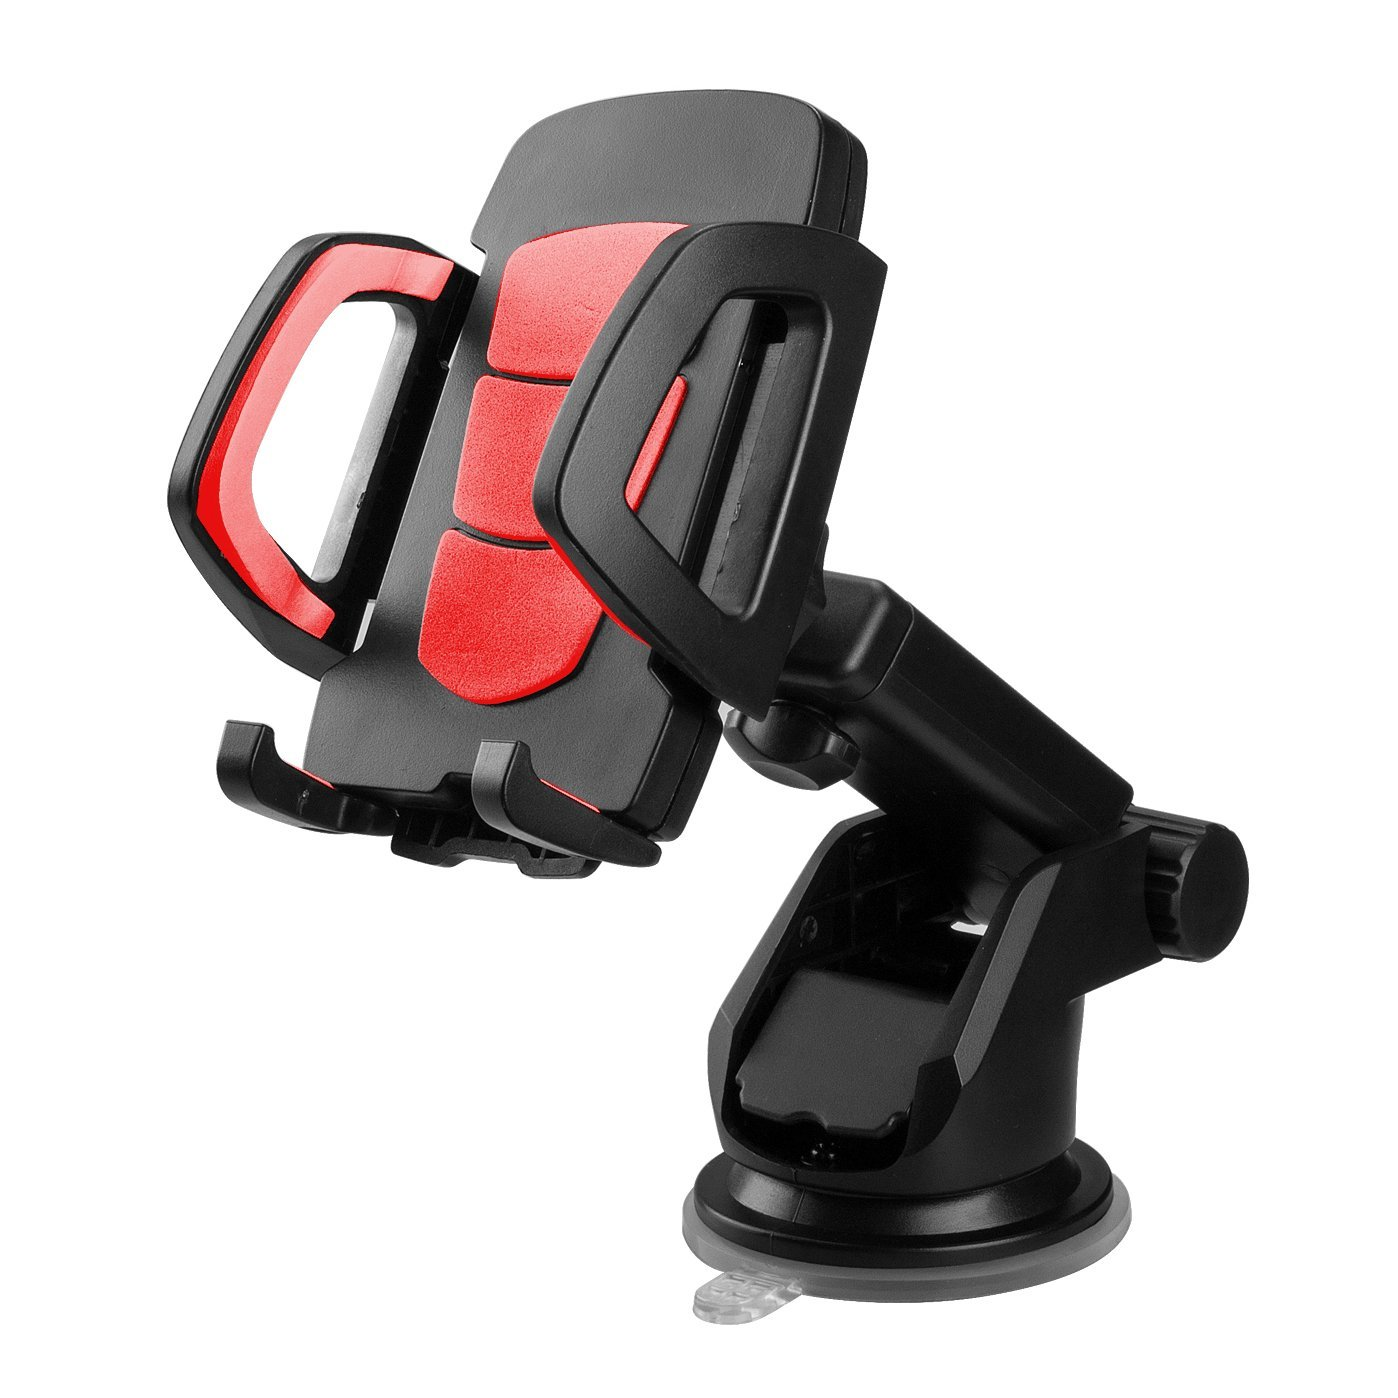 Lantoo Car Mount, Adjustable Car Phone Holder Universal Long Arm/Neck 360°Rotation with Reusable Suction Cup for Dashboard and Windshield for iPhone6/6s/6Plus,Samsung,Sonny,HTC(Red)